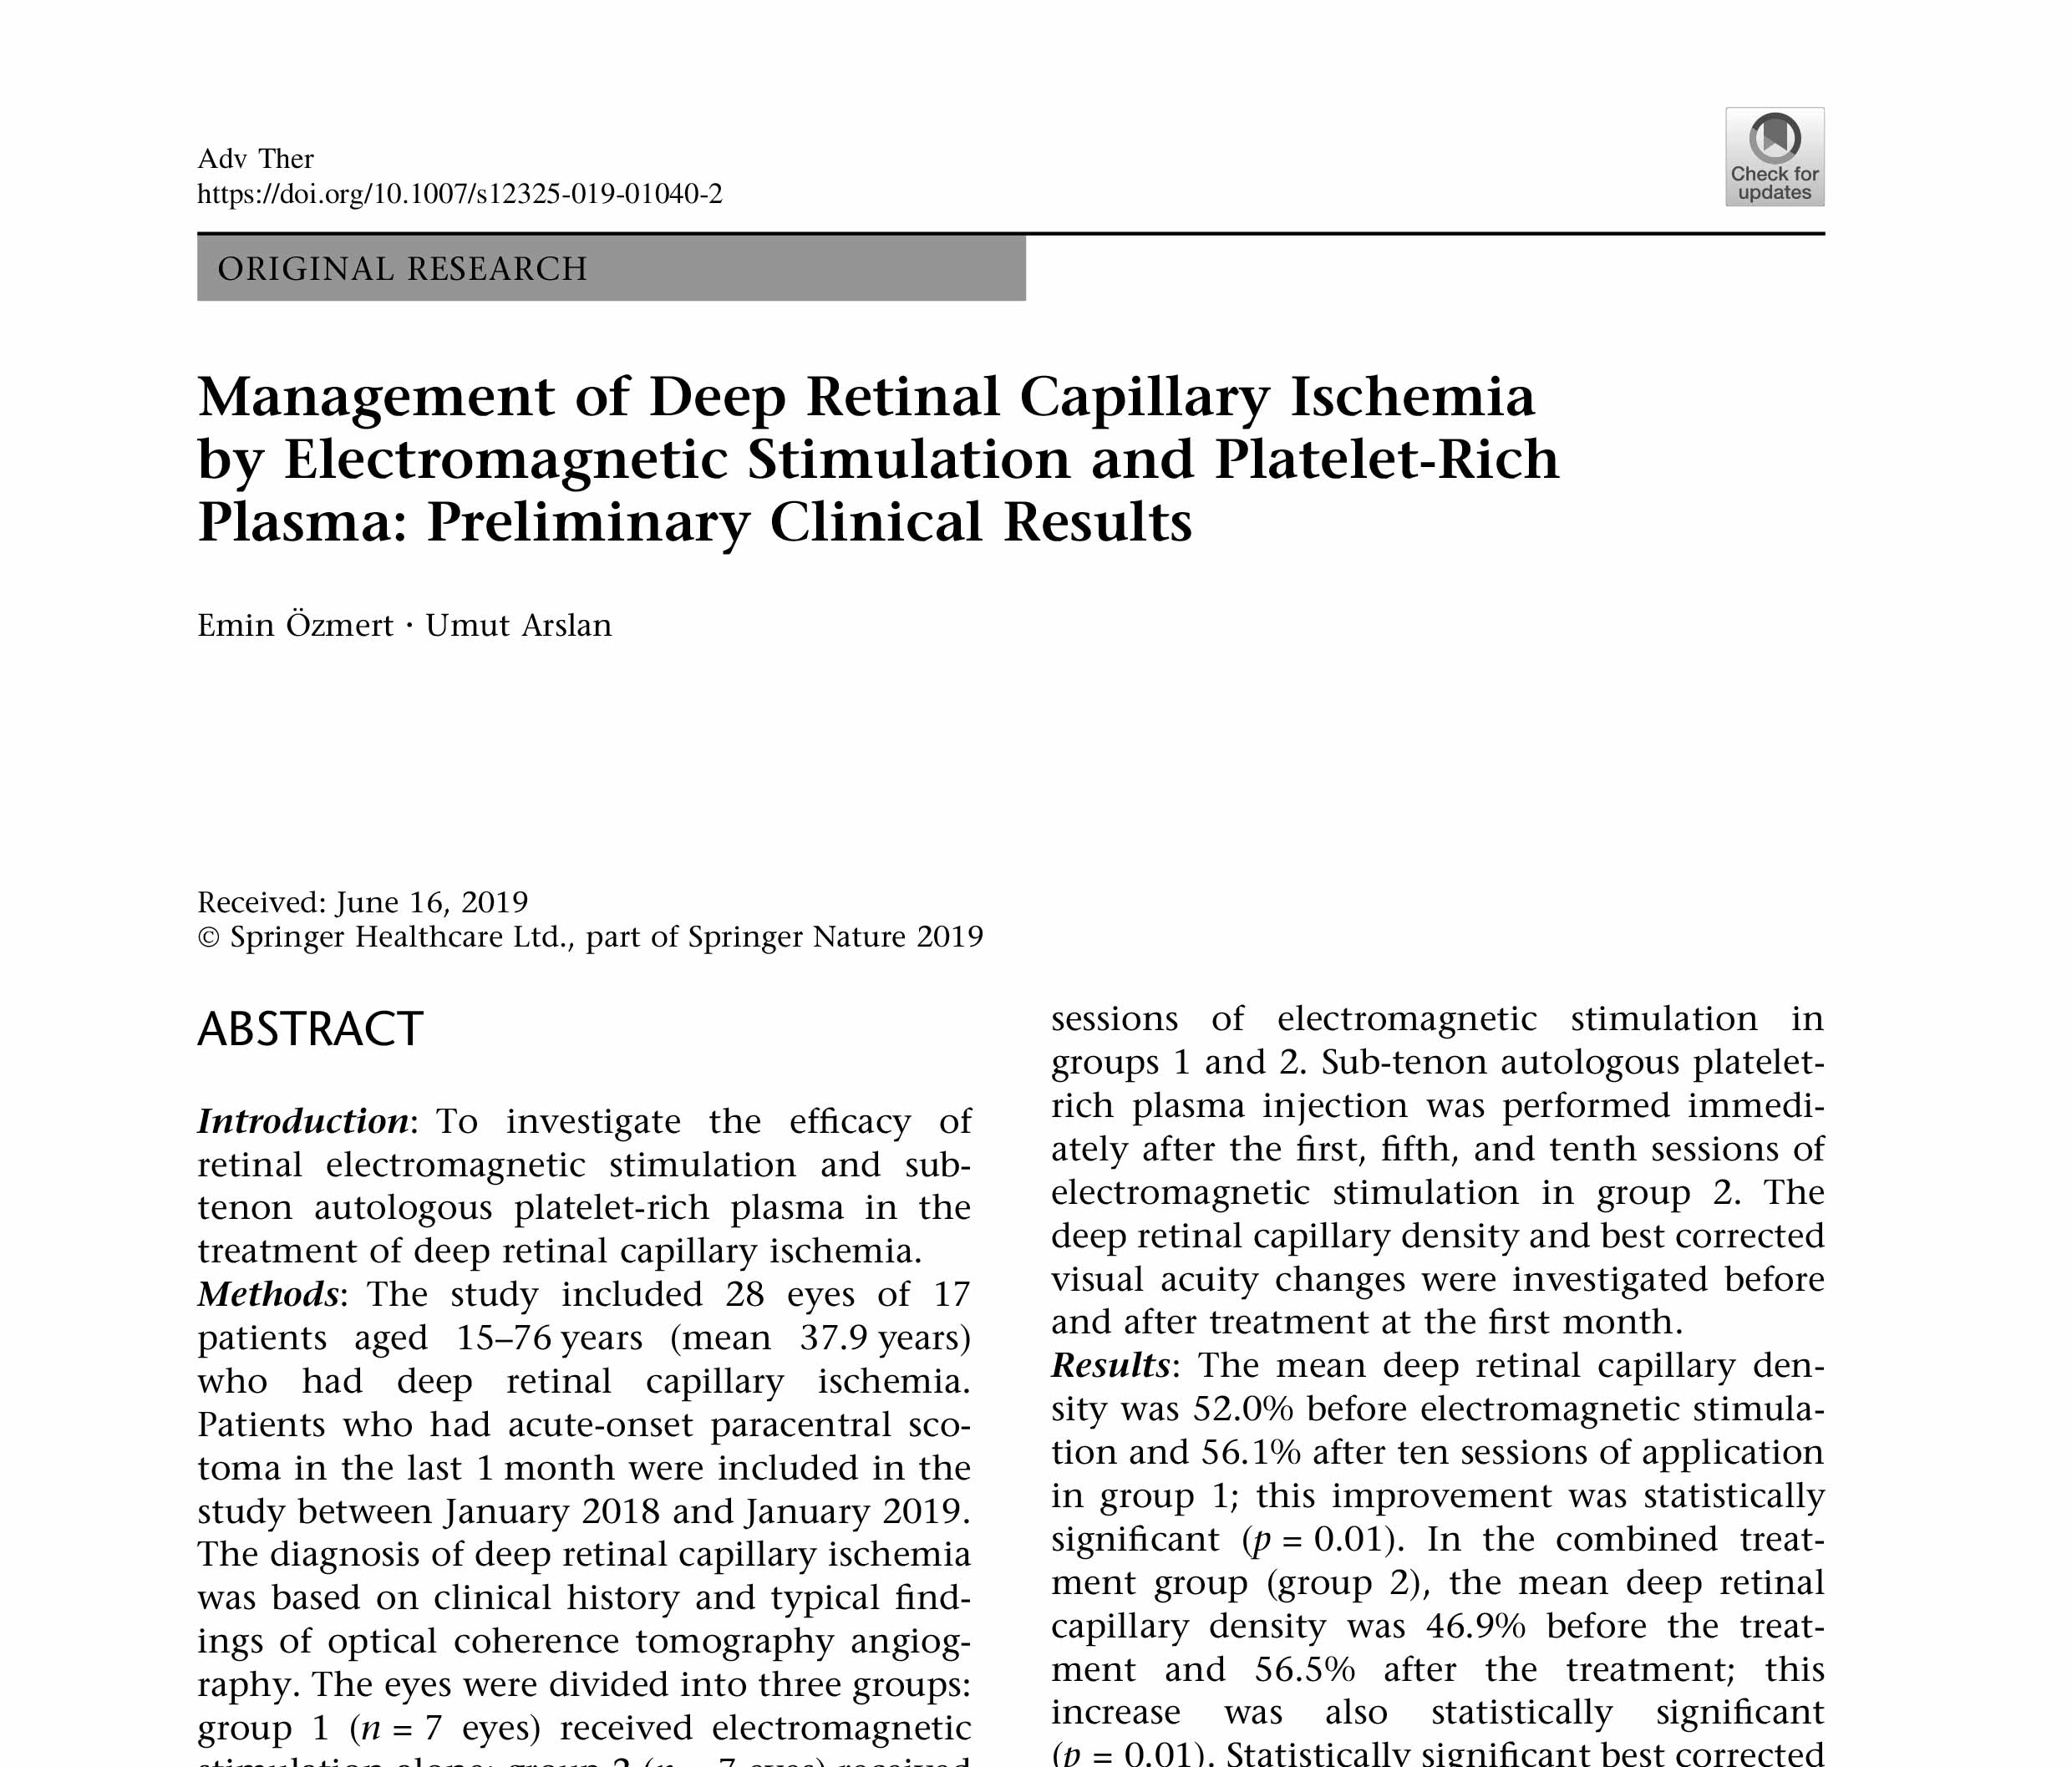 Management of Deep Retinal Capillary Ischemia by Electromagnetic Stimulation and Platelet-Rich Plasma: Preliminary Clinical Results